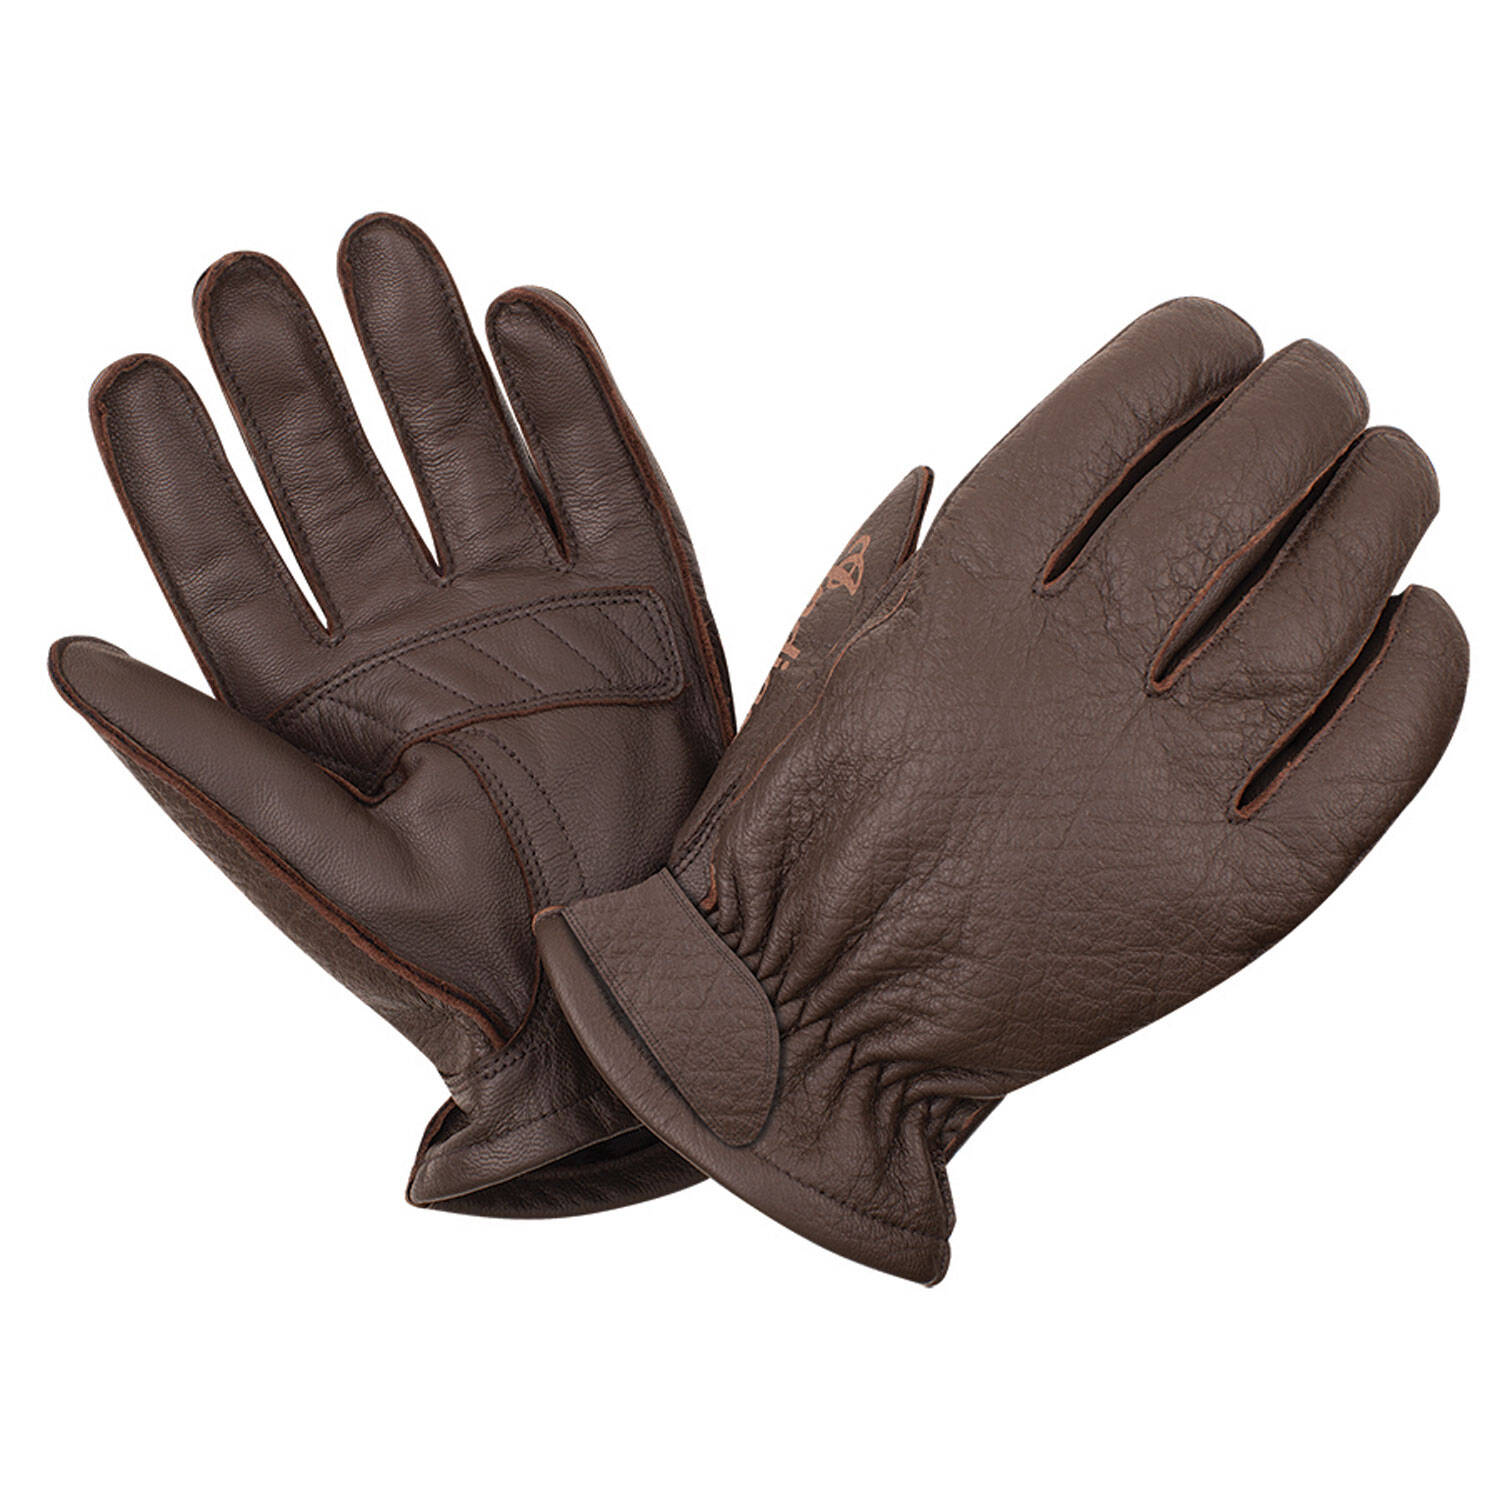 Shop for Men's Gloves and Mittens at REI - FREE SHIPPING With $50 minimum purchase. Top quality, great selection and expert advice you can trust. % Satisfaction Guarantee. Shop for Men's Gloves and Mittens at REI - FREE SHIPPING With $50 minimum purchase. Top quality, great selection and expert advice you can trust. % Satisfaction Guarantee.